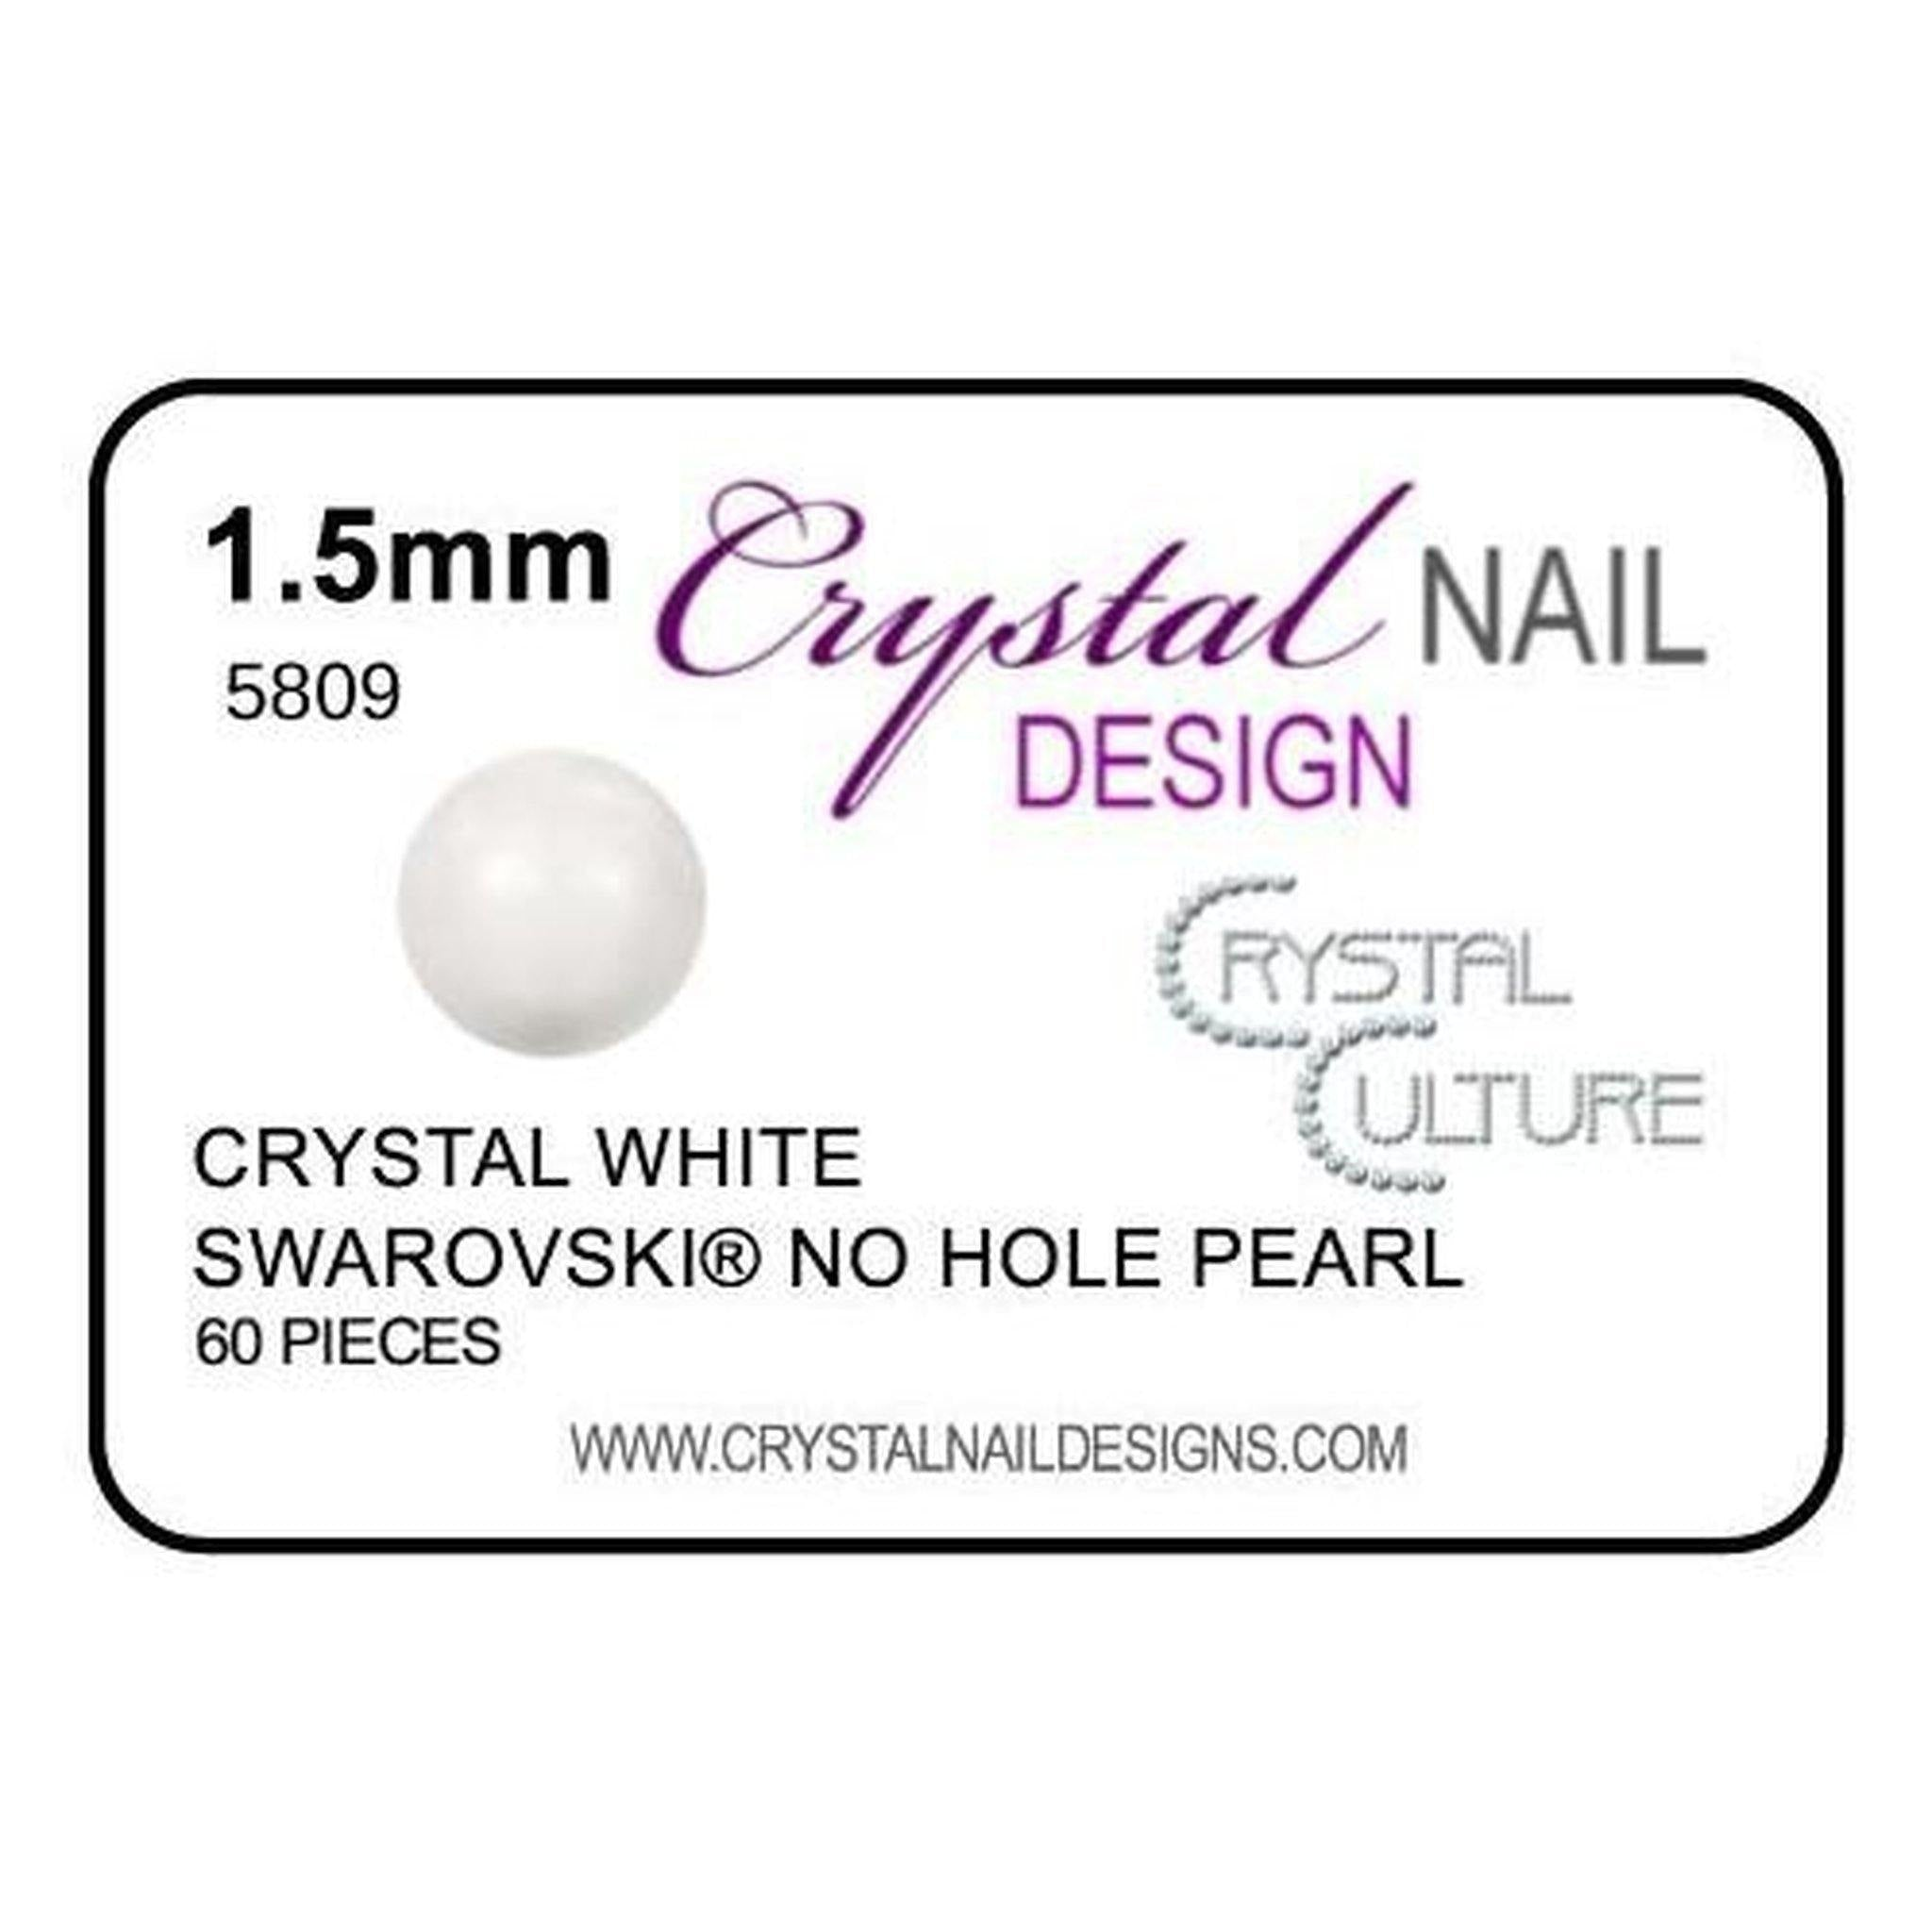 1.5mm Swarovski No Hole Pearl - White-Gel Essentialz